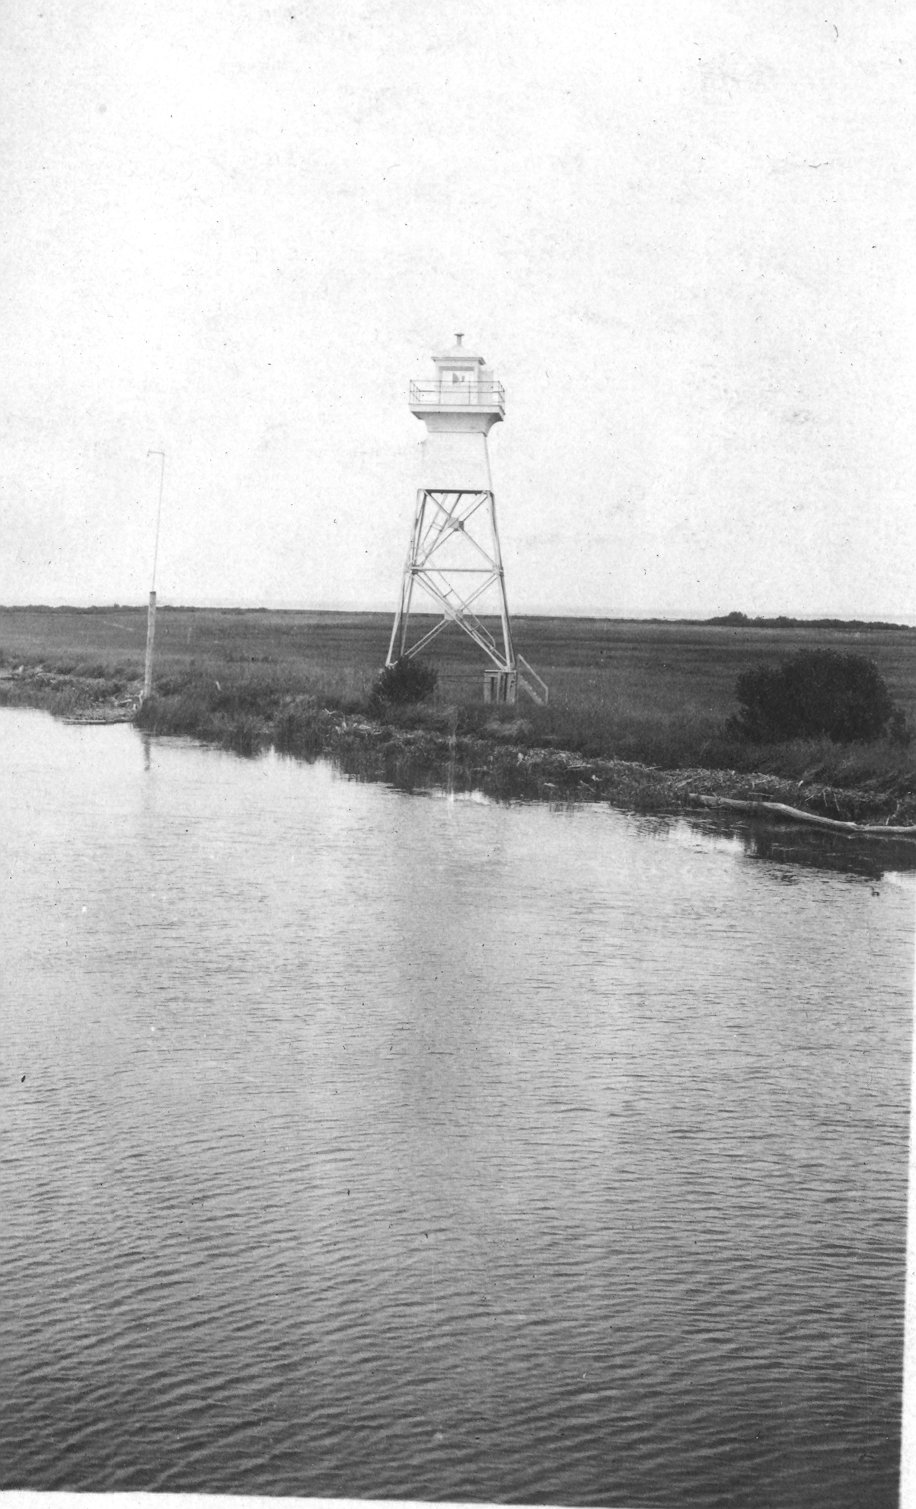 1922 East lighthouse at Red River mouth